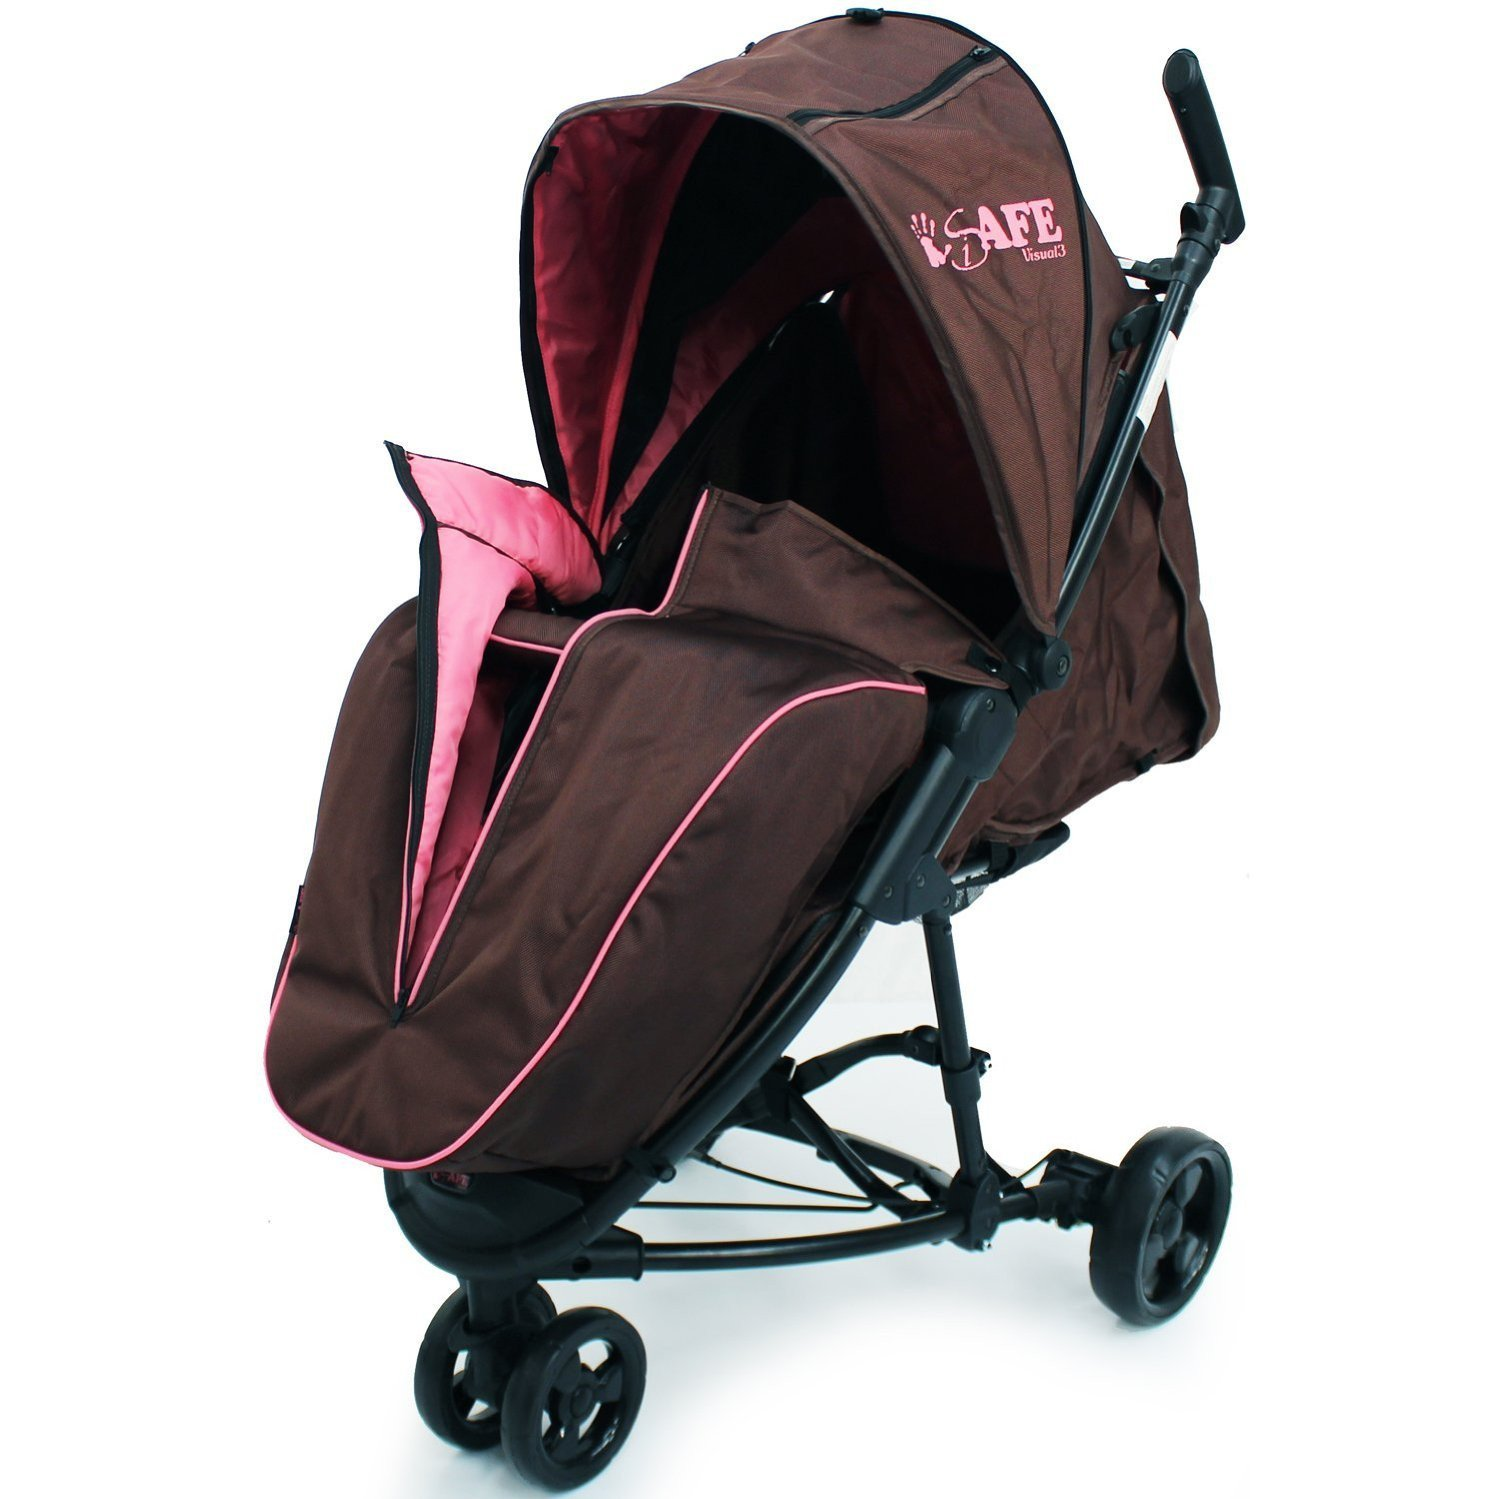 iSafe Visual 3 Stroller Raspberry Cake - Complete With Footmuff, Raincover & Changing Bag Baby Travel